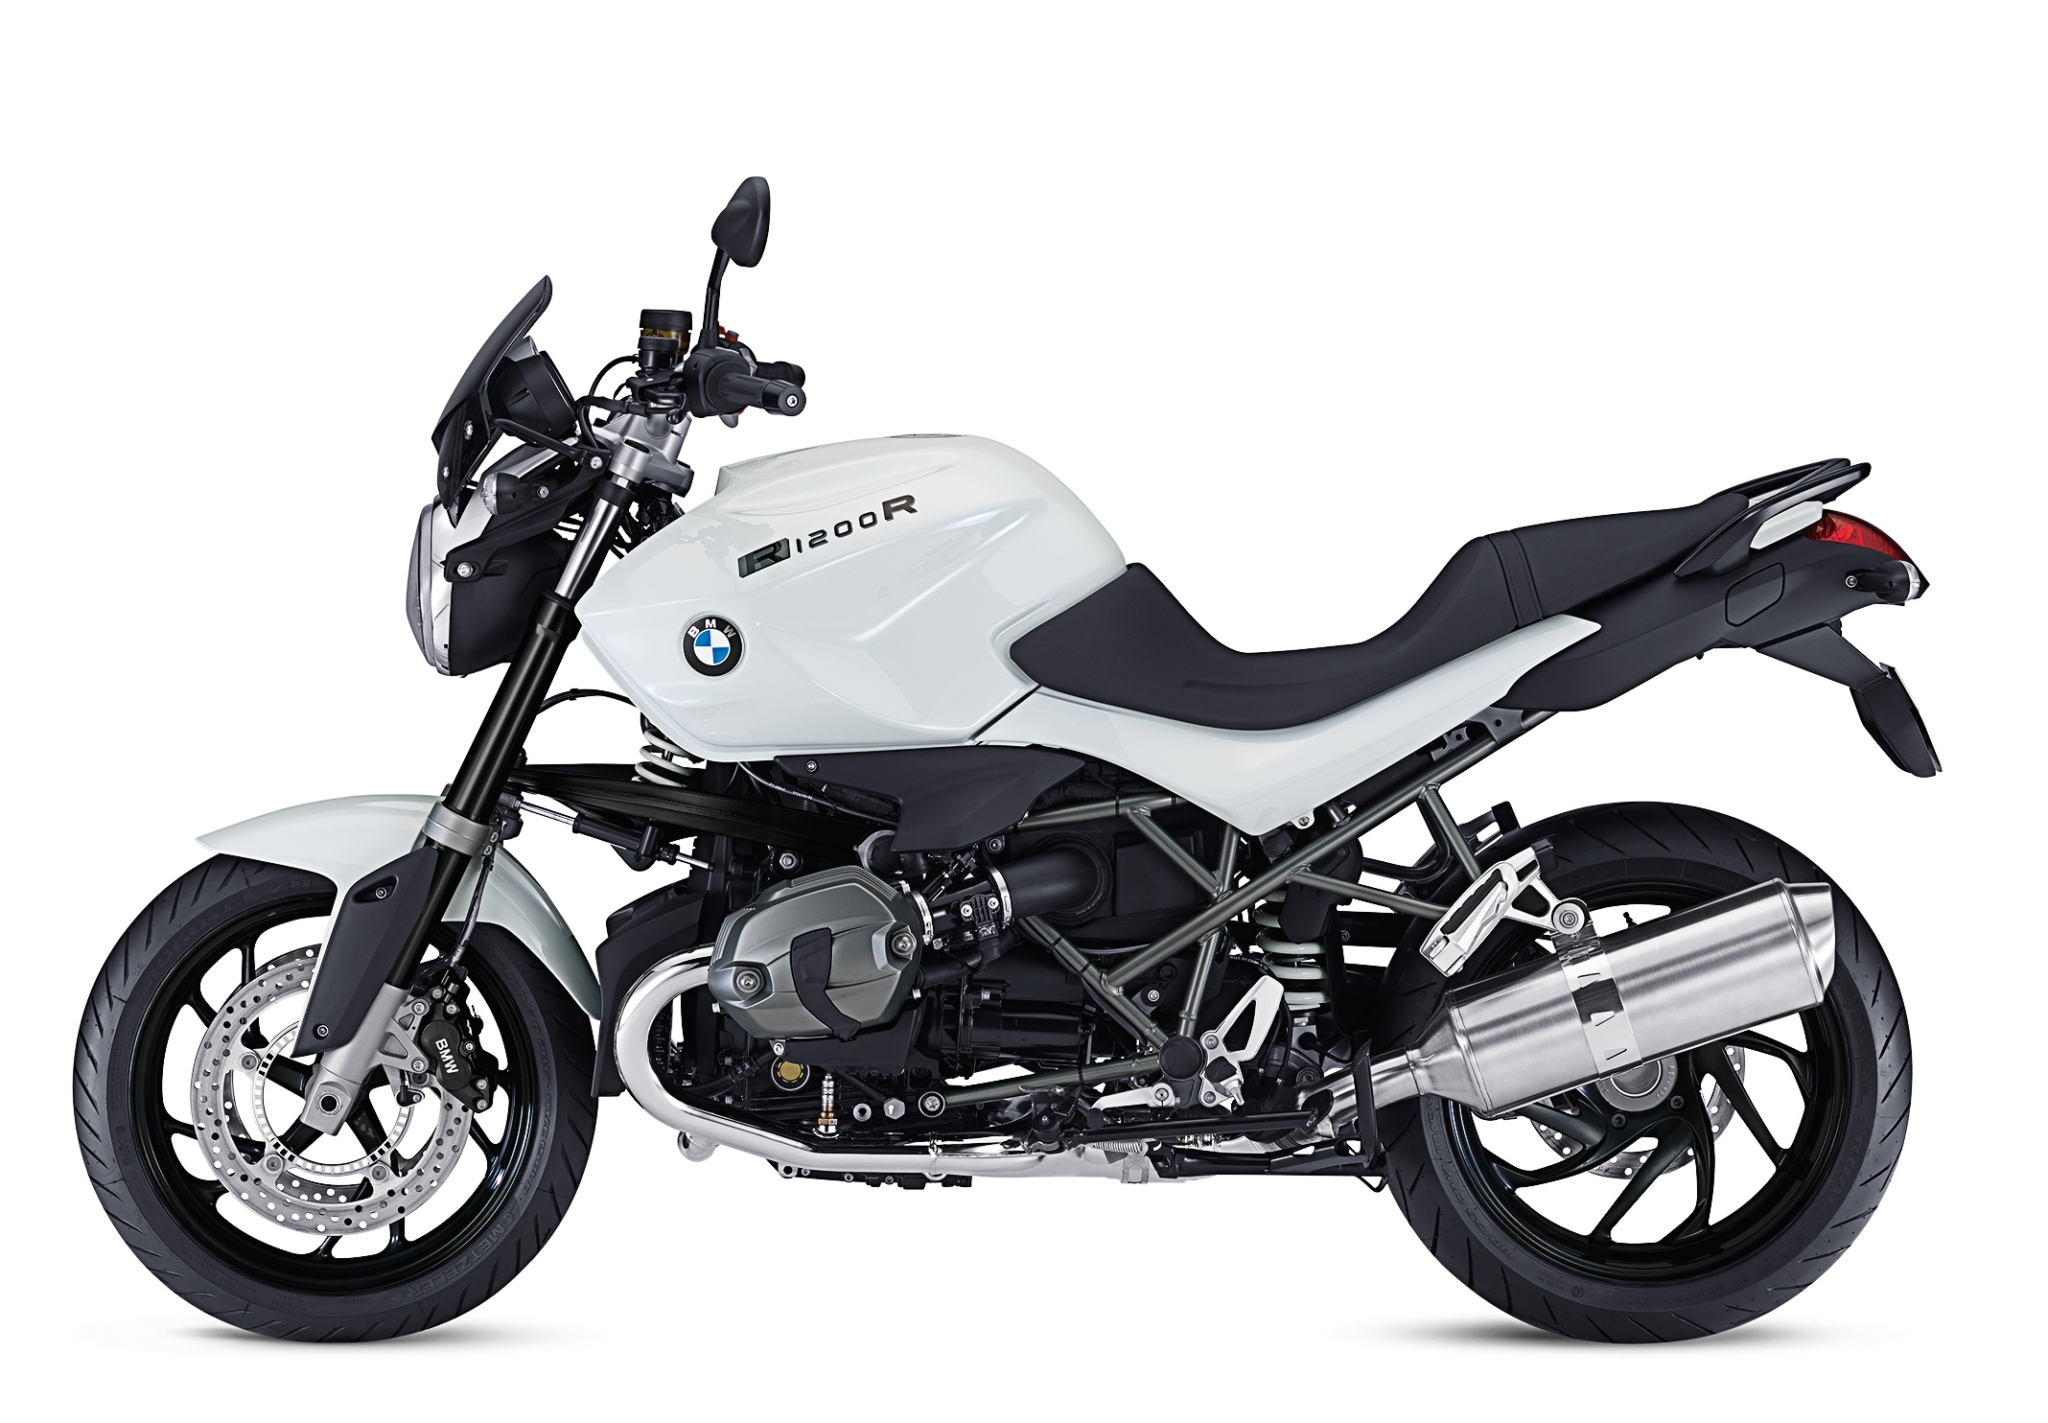 bmw-reveals-r1200r-darkwhite-special-model-roadster_1 Extraordinary Bmw R 1200 R Street Fighter Cars Trend